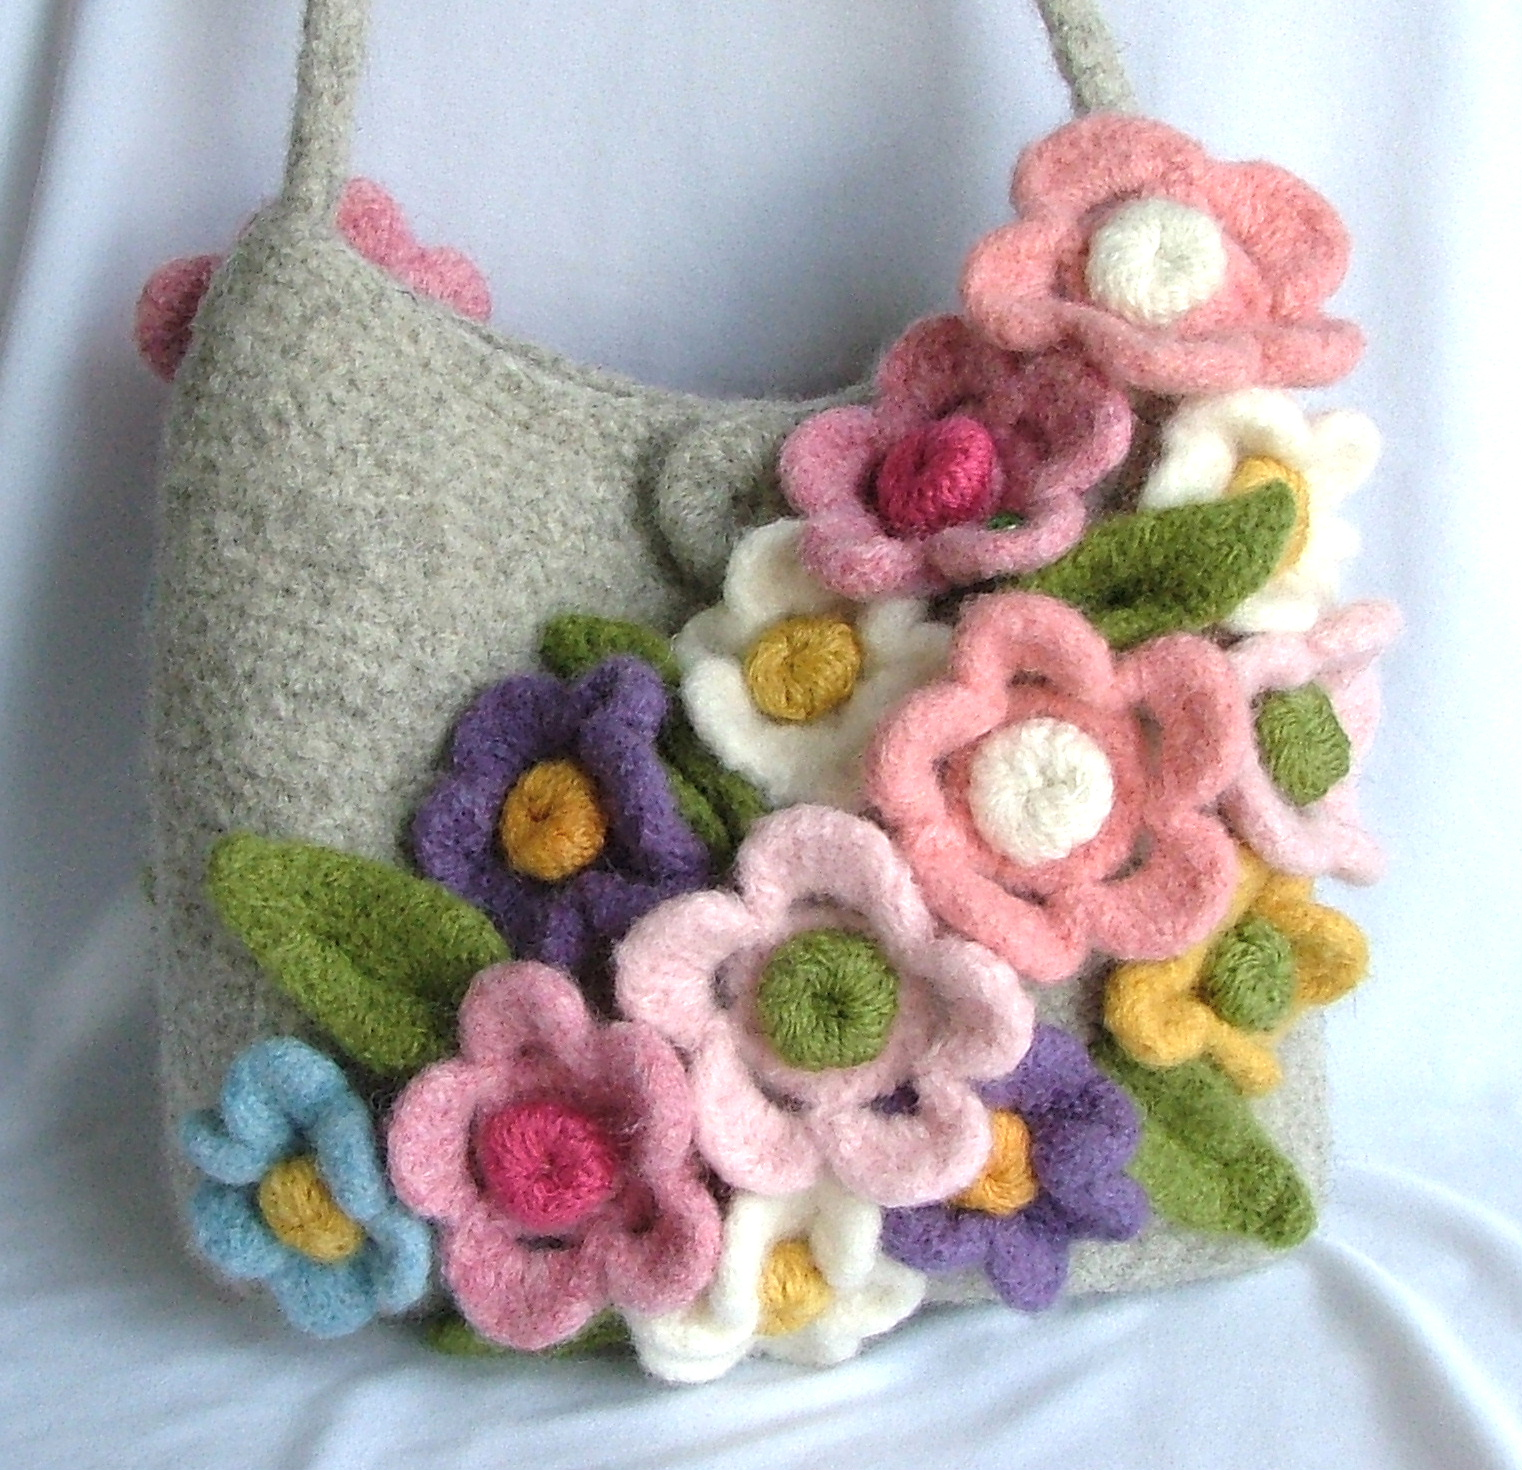 Crochet Pattern Central - Free Felted Items Crochet Pattern Link